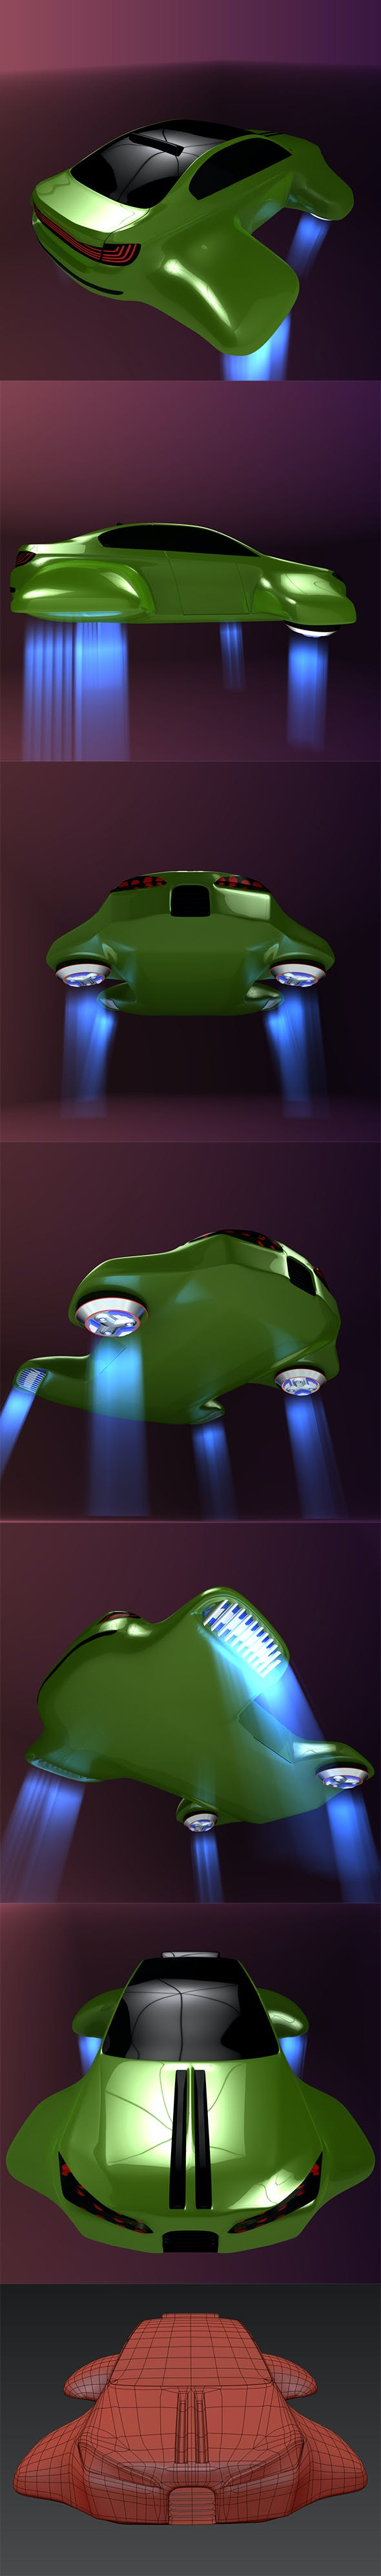 Hover car BF - 3DOcean Item for Sale